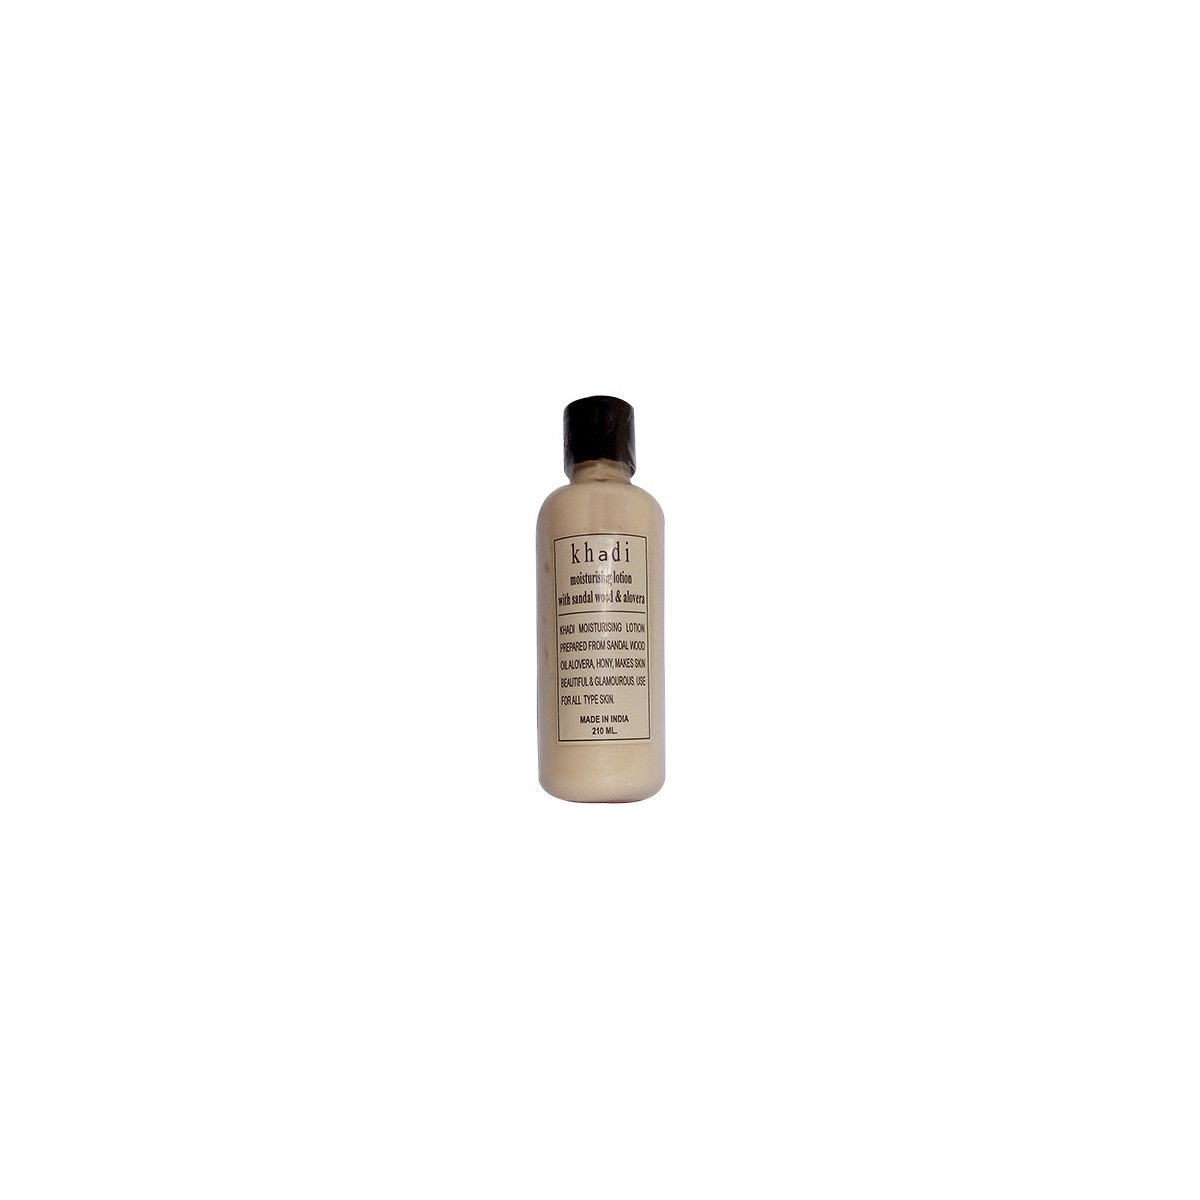 Khadi Sandal Wood  moisturizer 210ml